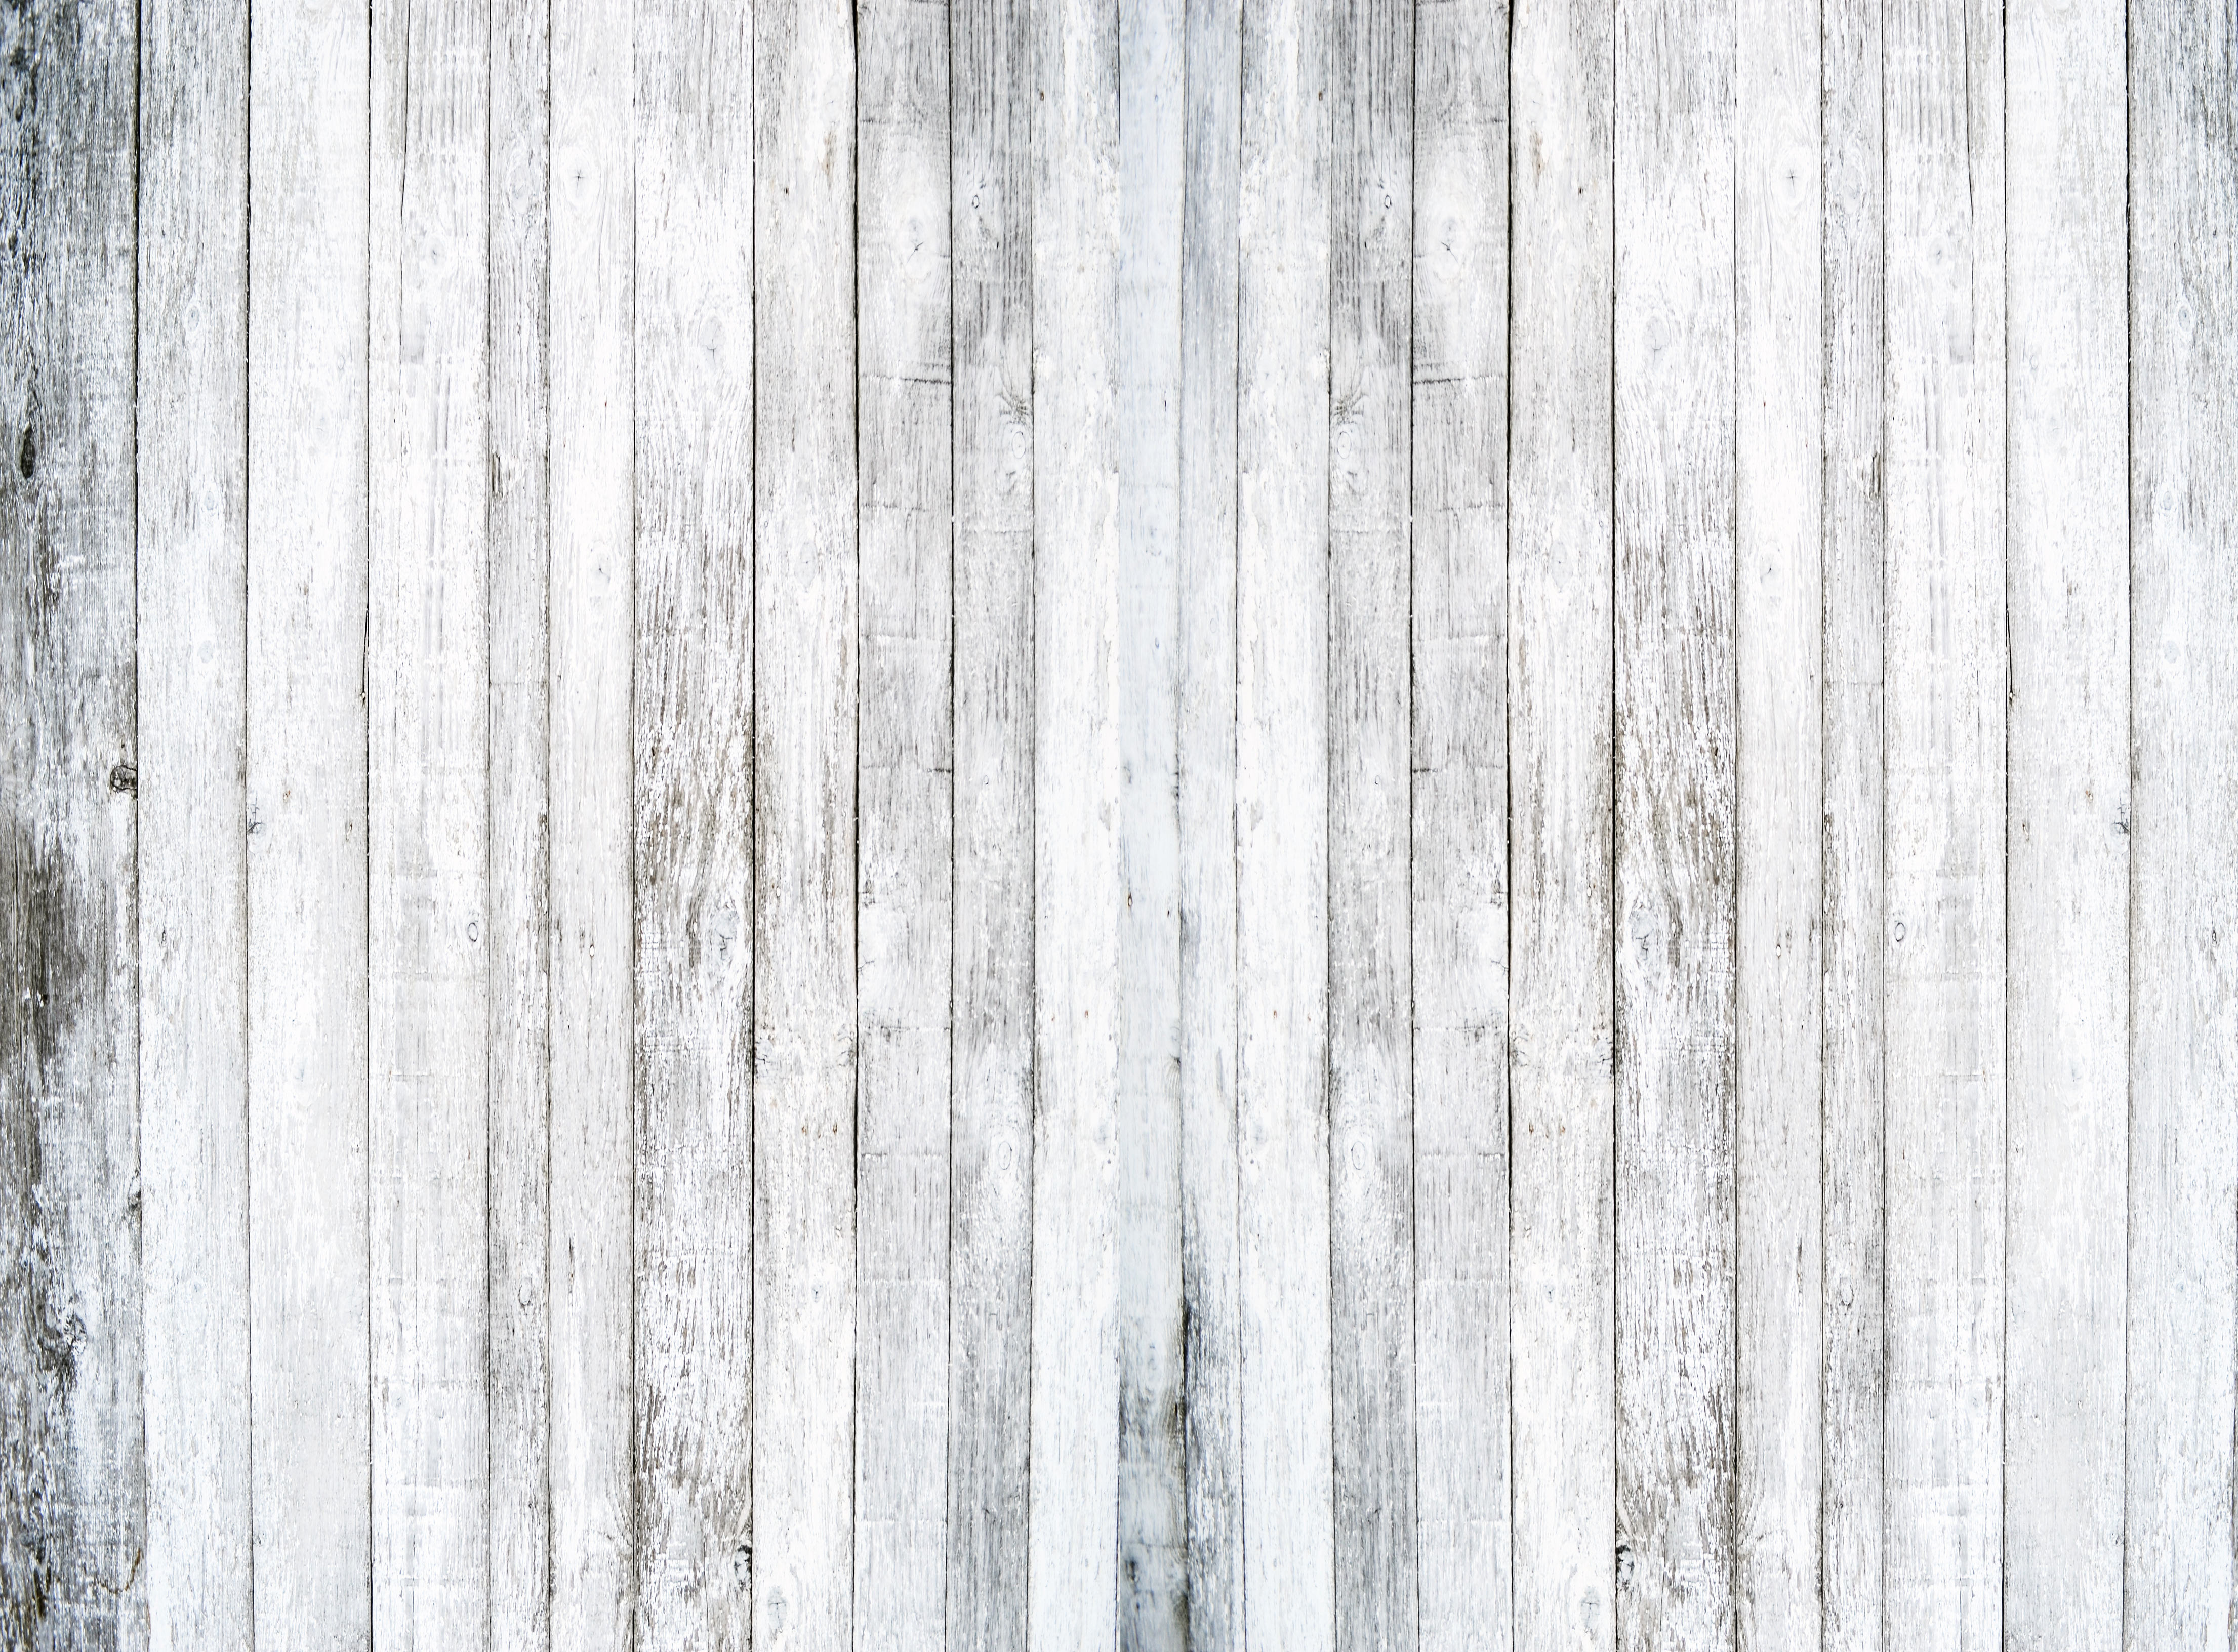 White Wood Background First Congregational Church